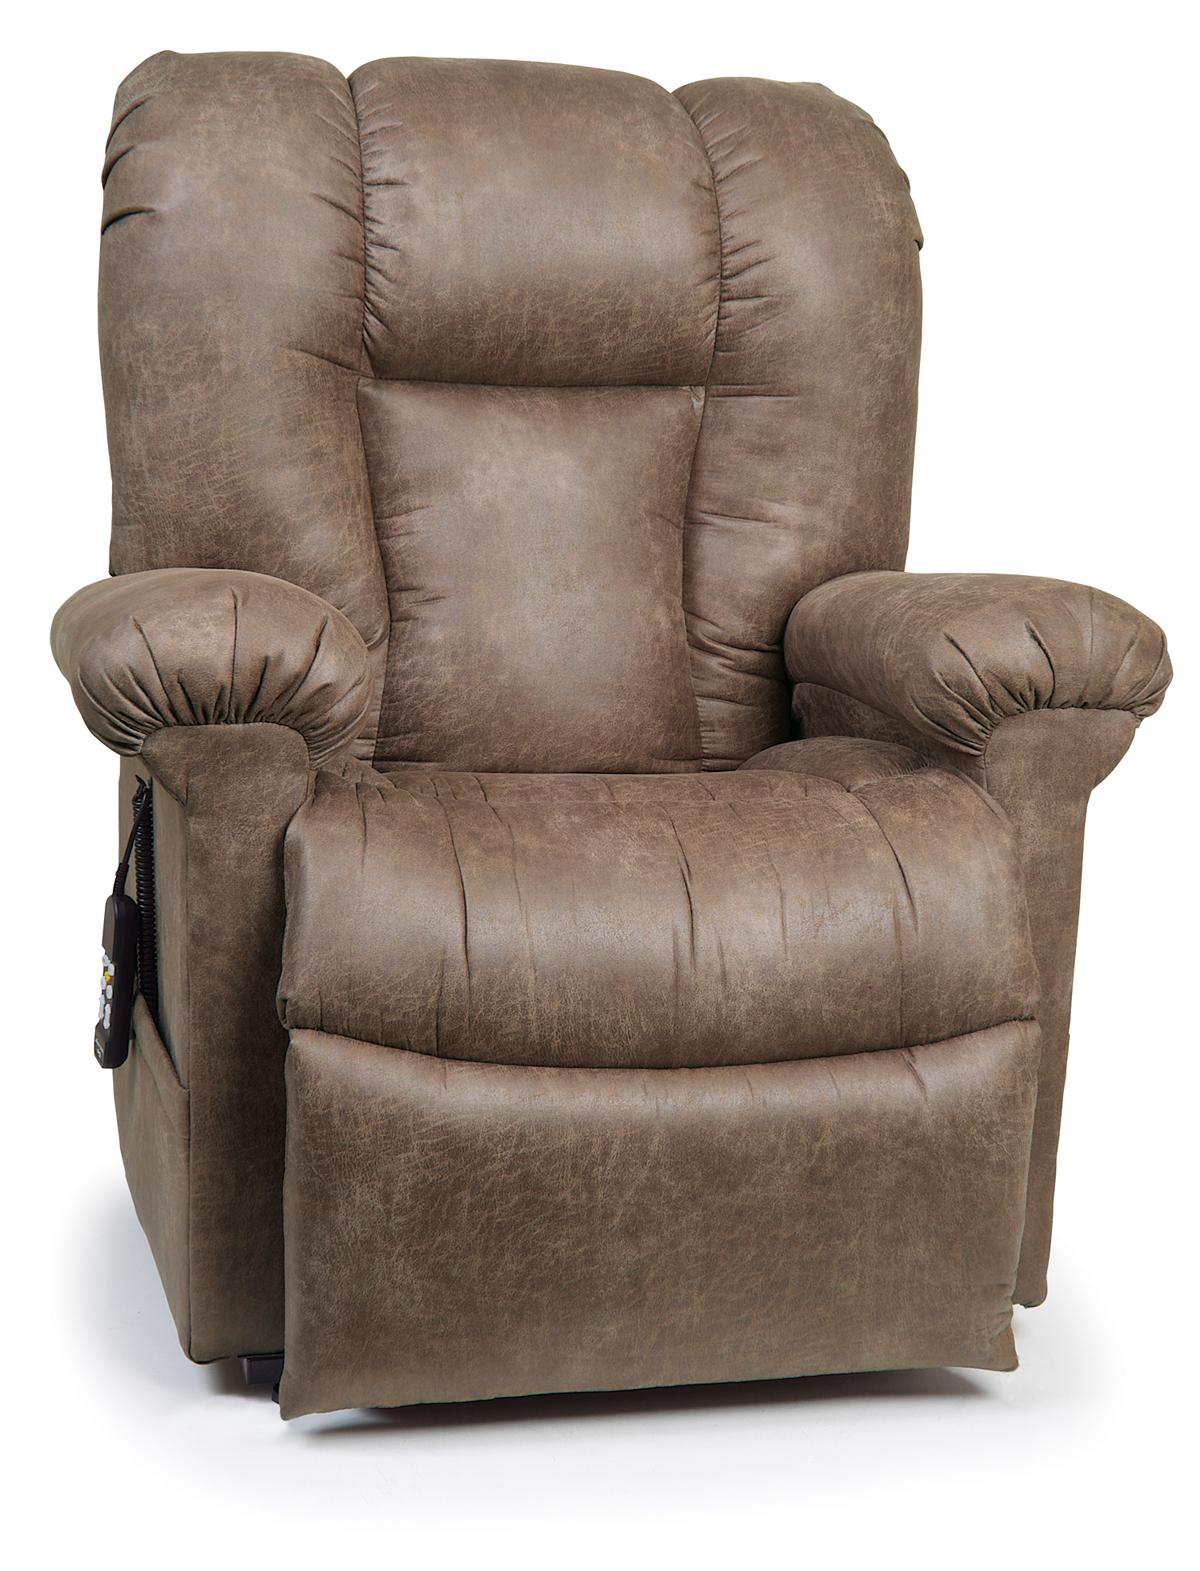 ultra tranquility chair easy ultracomfort recliners comfort bittersweet medium products lift living recliner comforter la